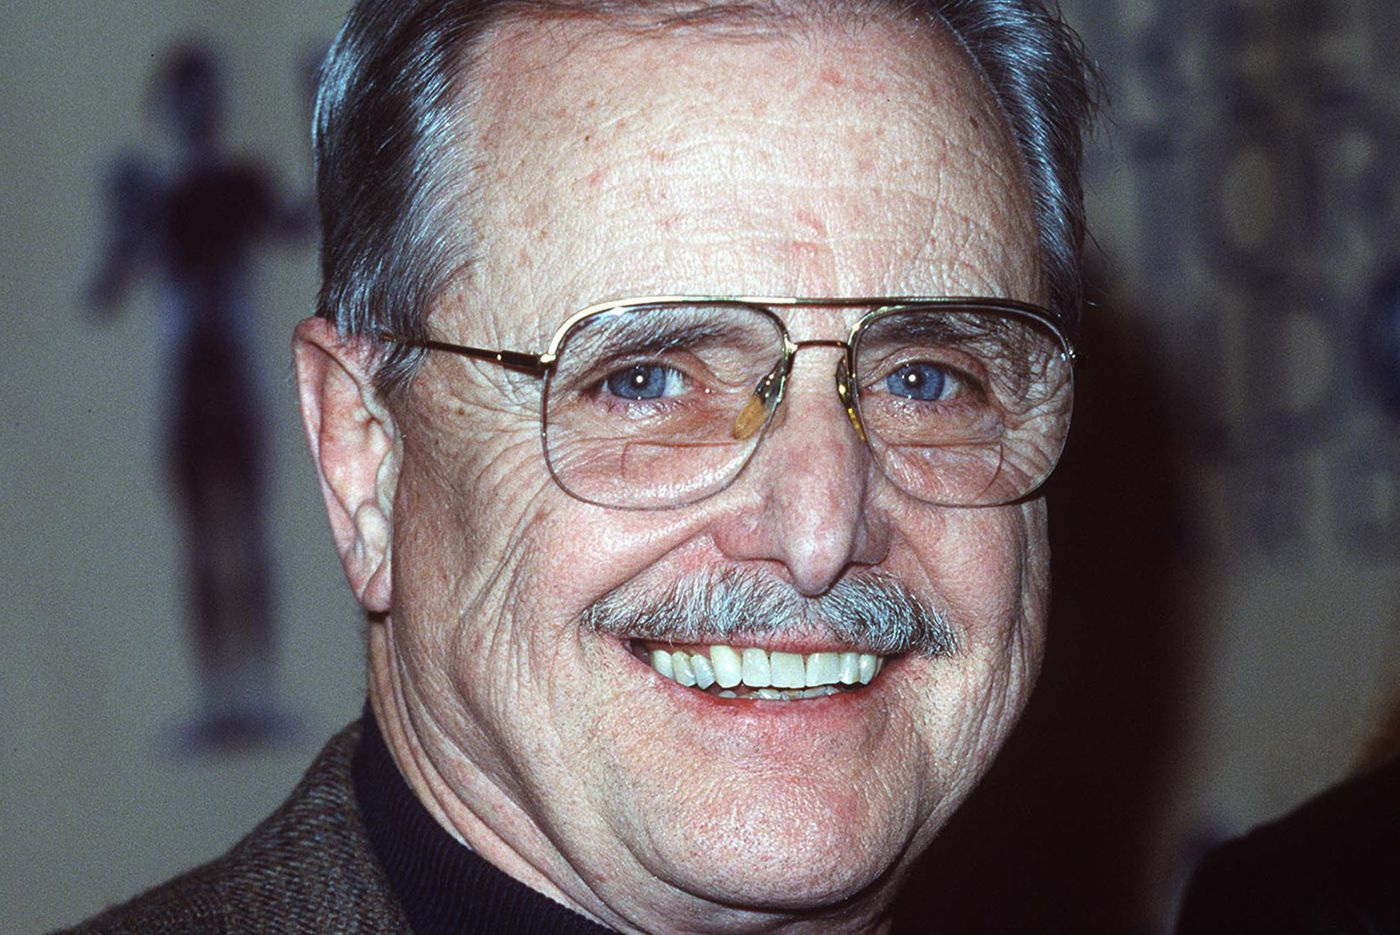 Mr. Feeny from 'Boy Meets World,' 91, stops attempted burglary at home